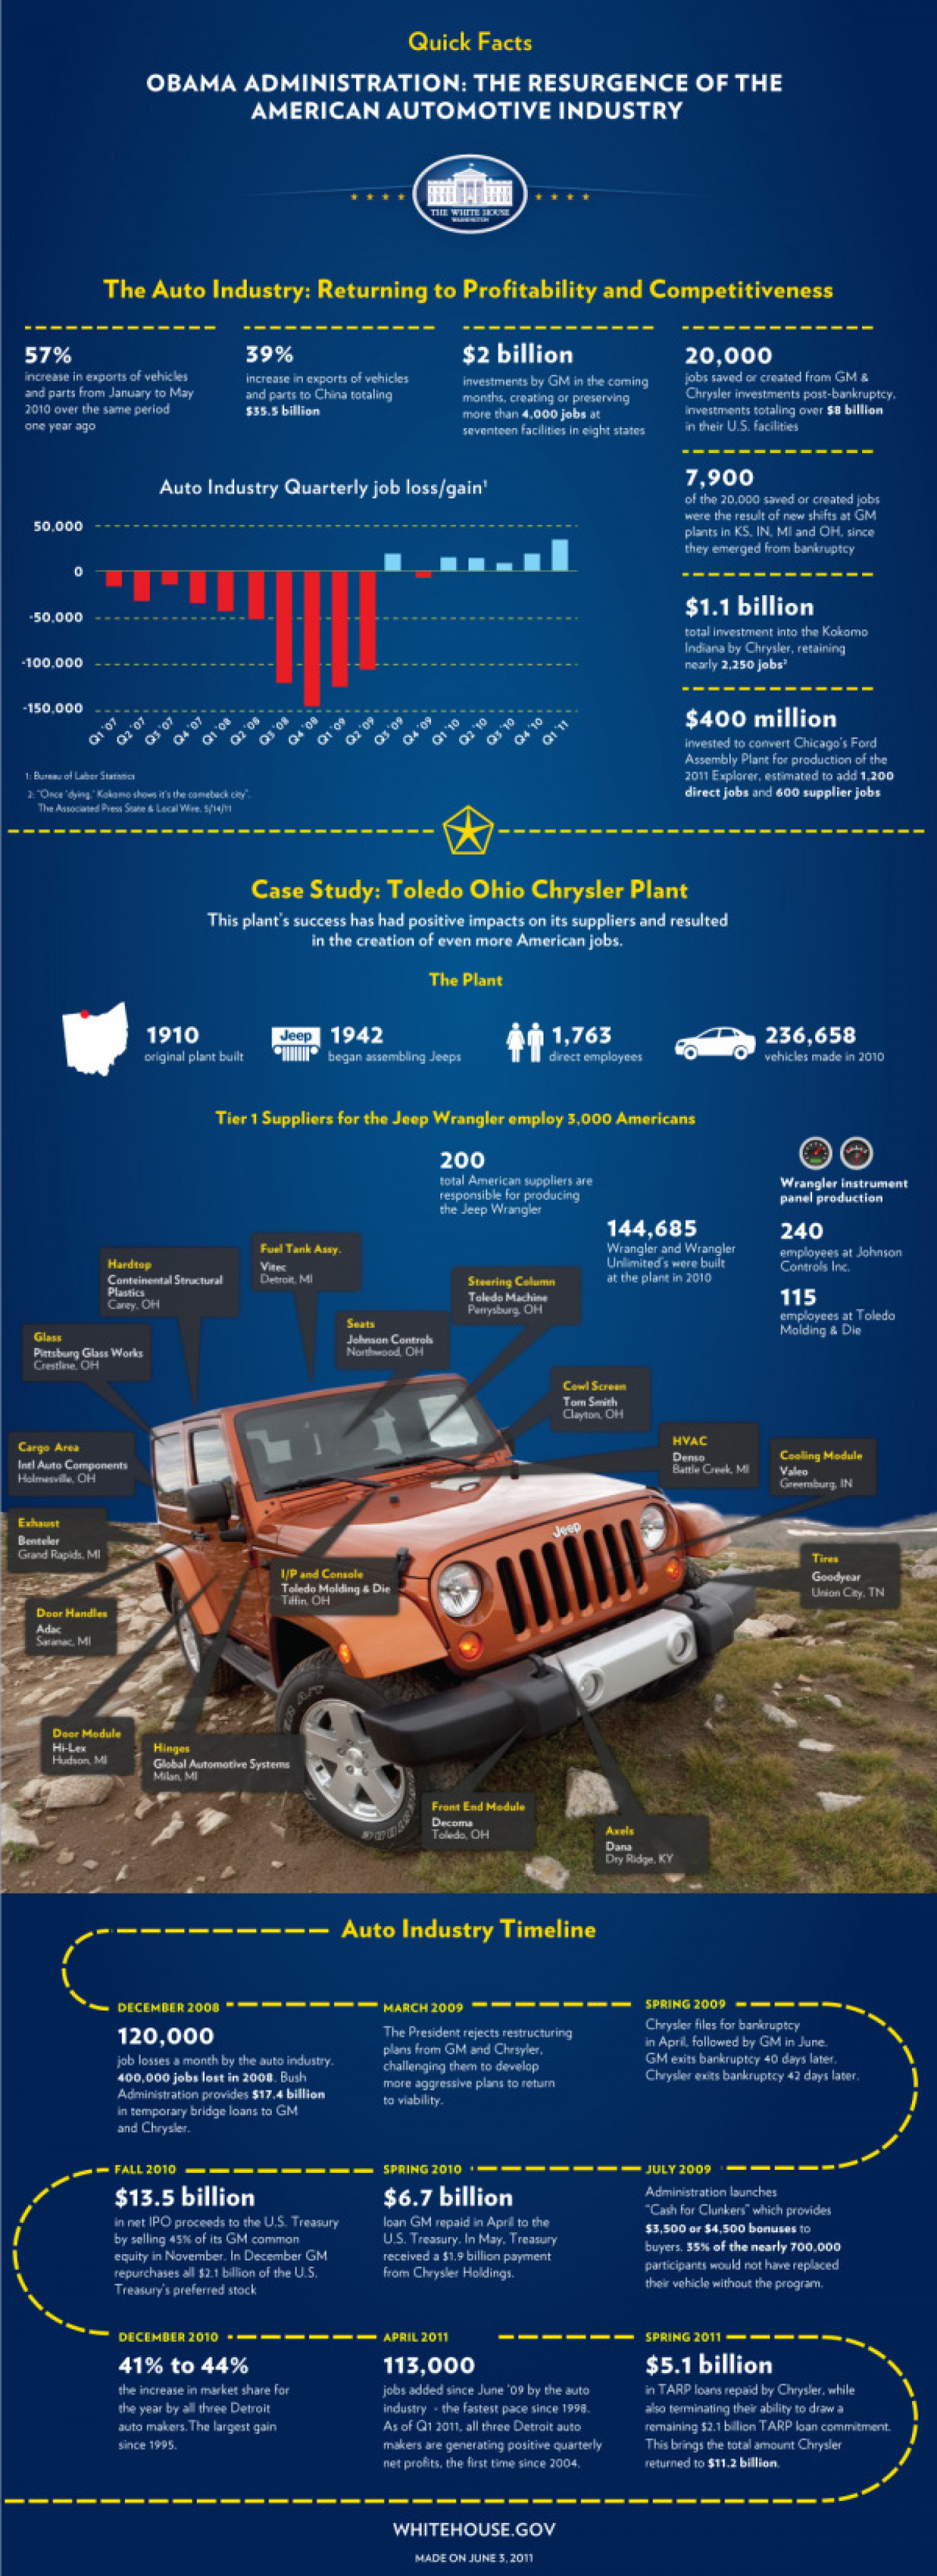 Obama Administration: The Resurgence of the American Automotive Industry  Infographic